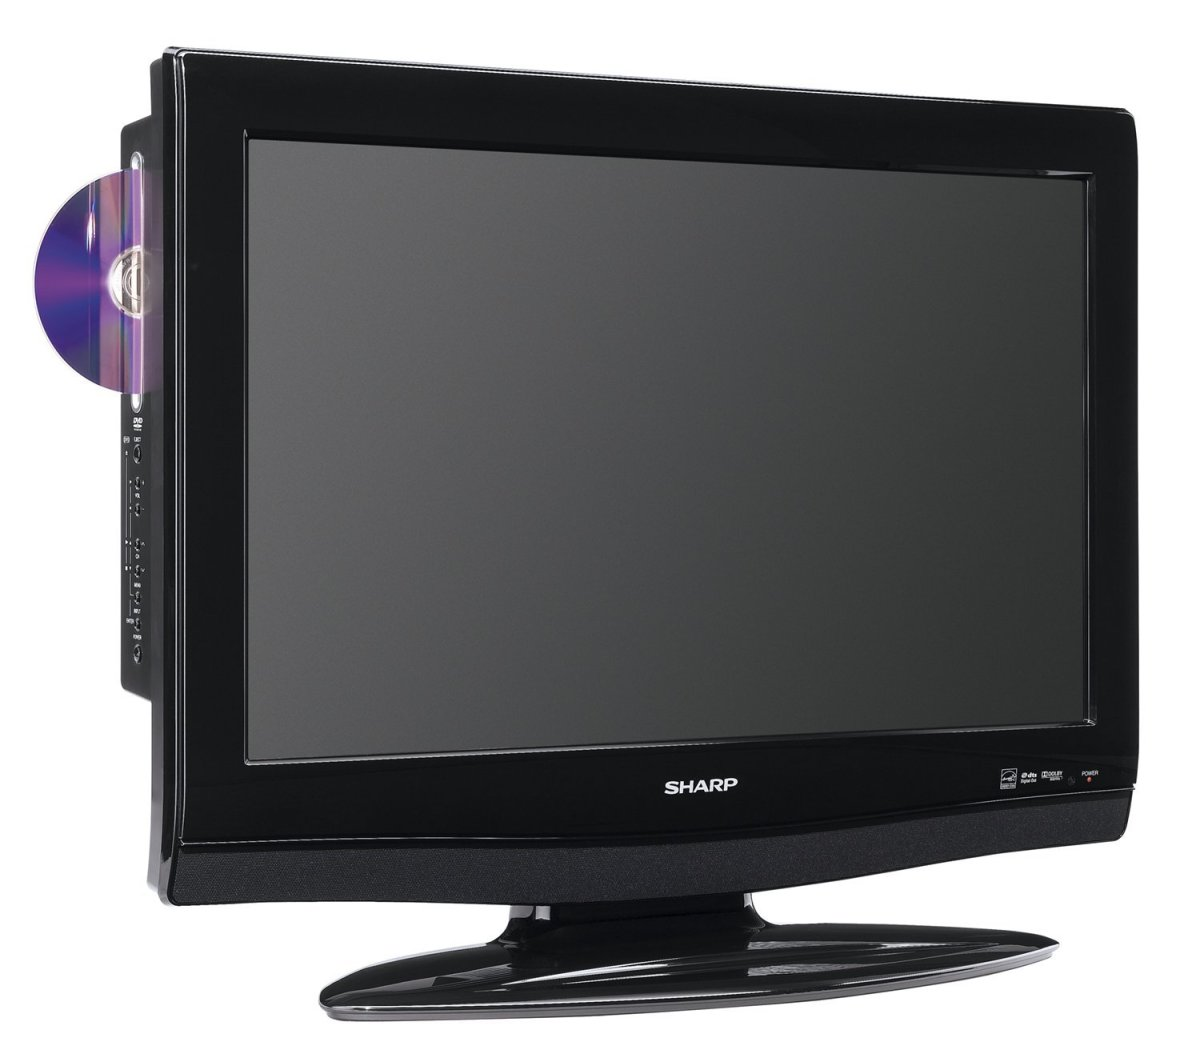 Sharp Lcd Old hdtv Model LC-26DV27UT With DVD: Have A Super TV/DVD Combo